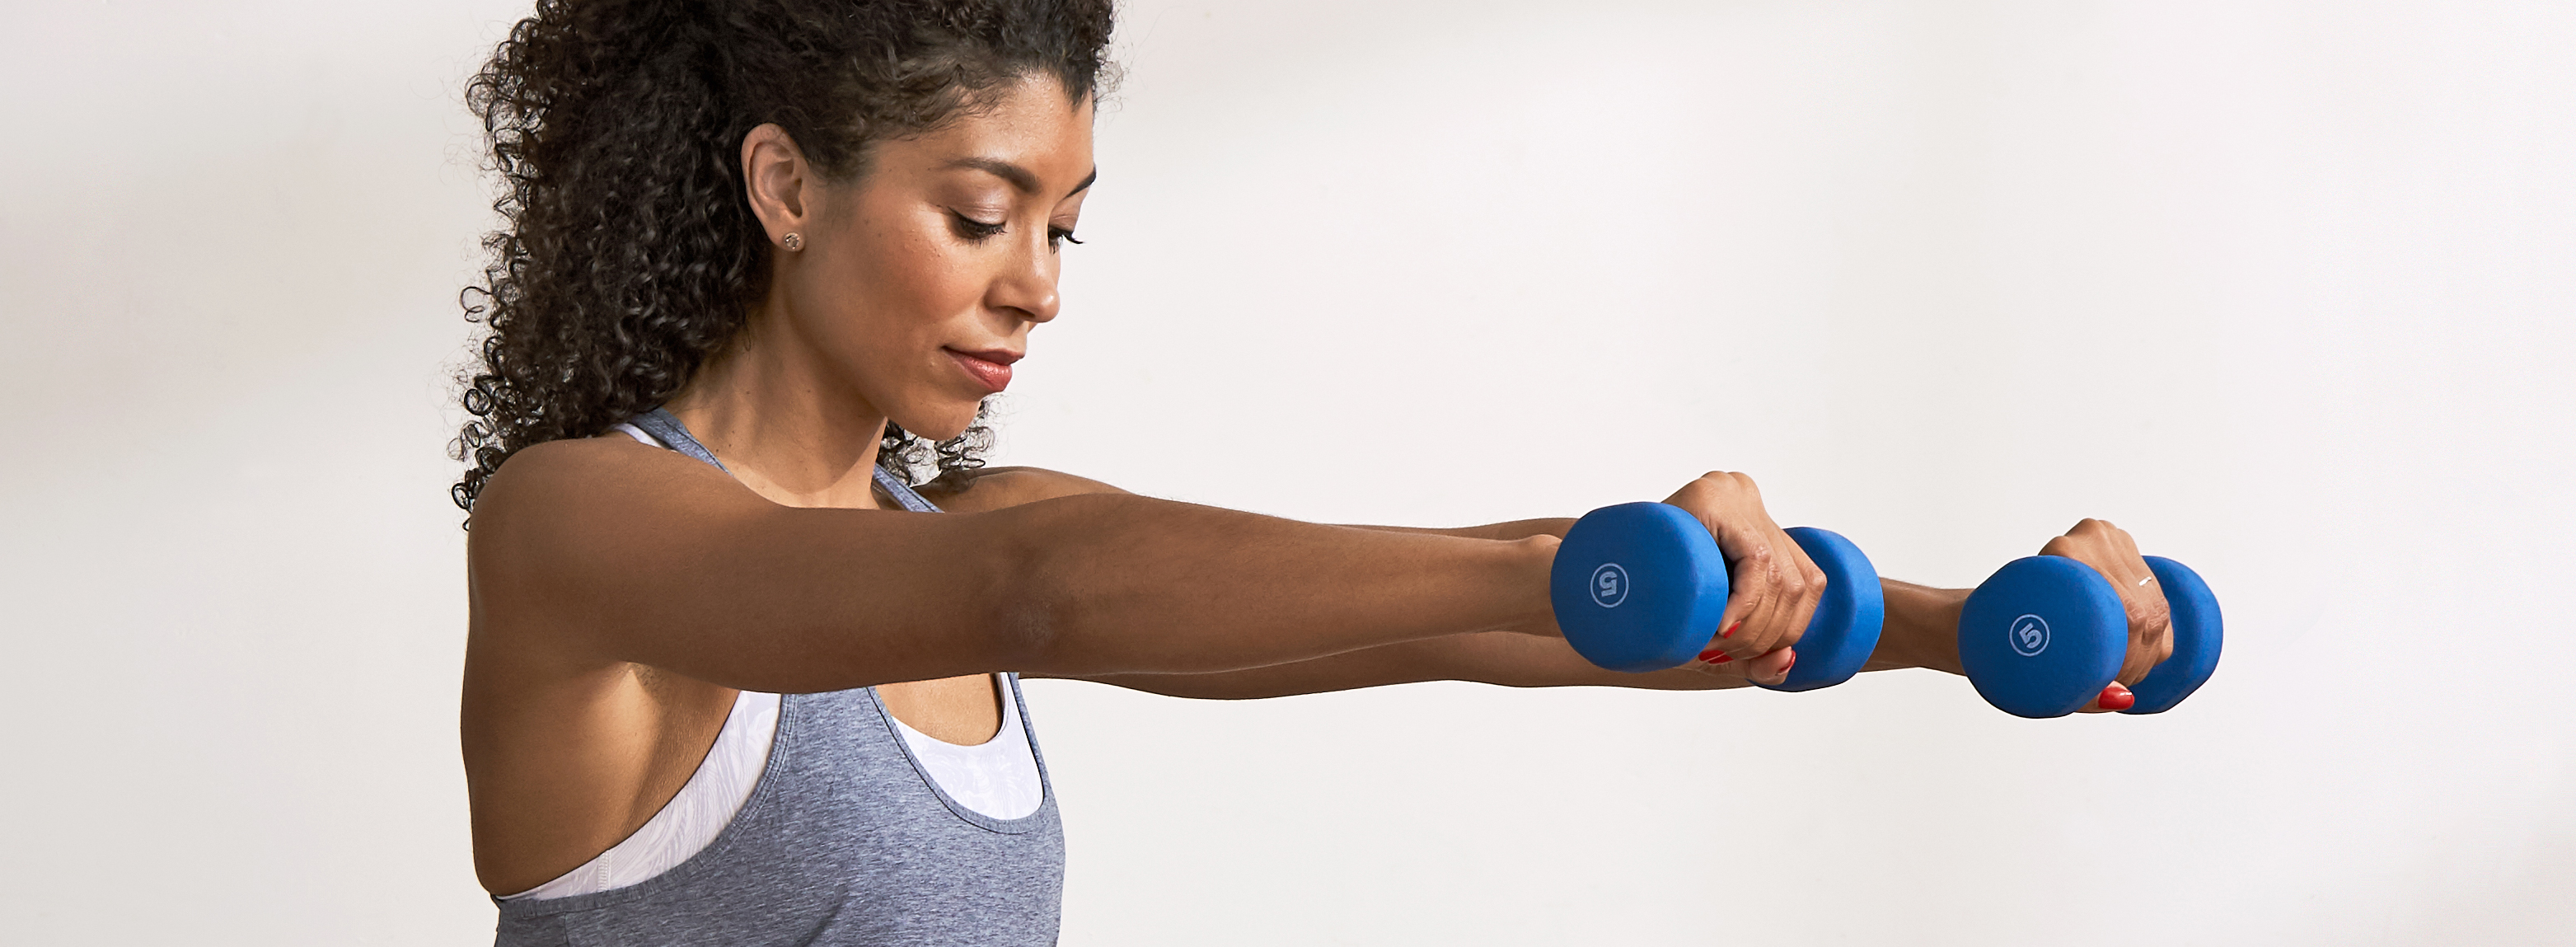 woman holding blue free weights